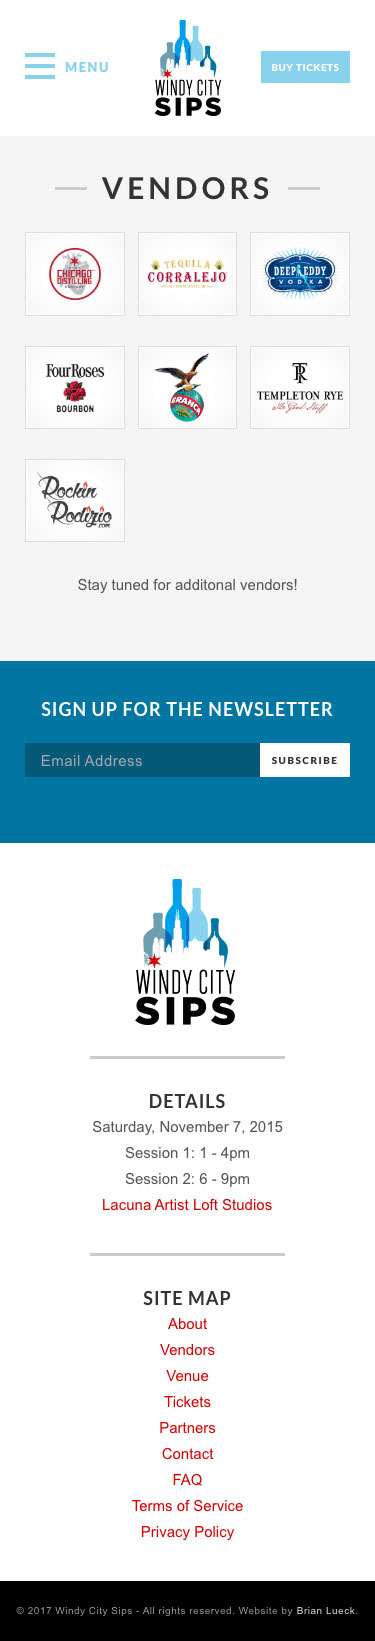 Windy City Sips - Vendors Page - iPhone View